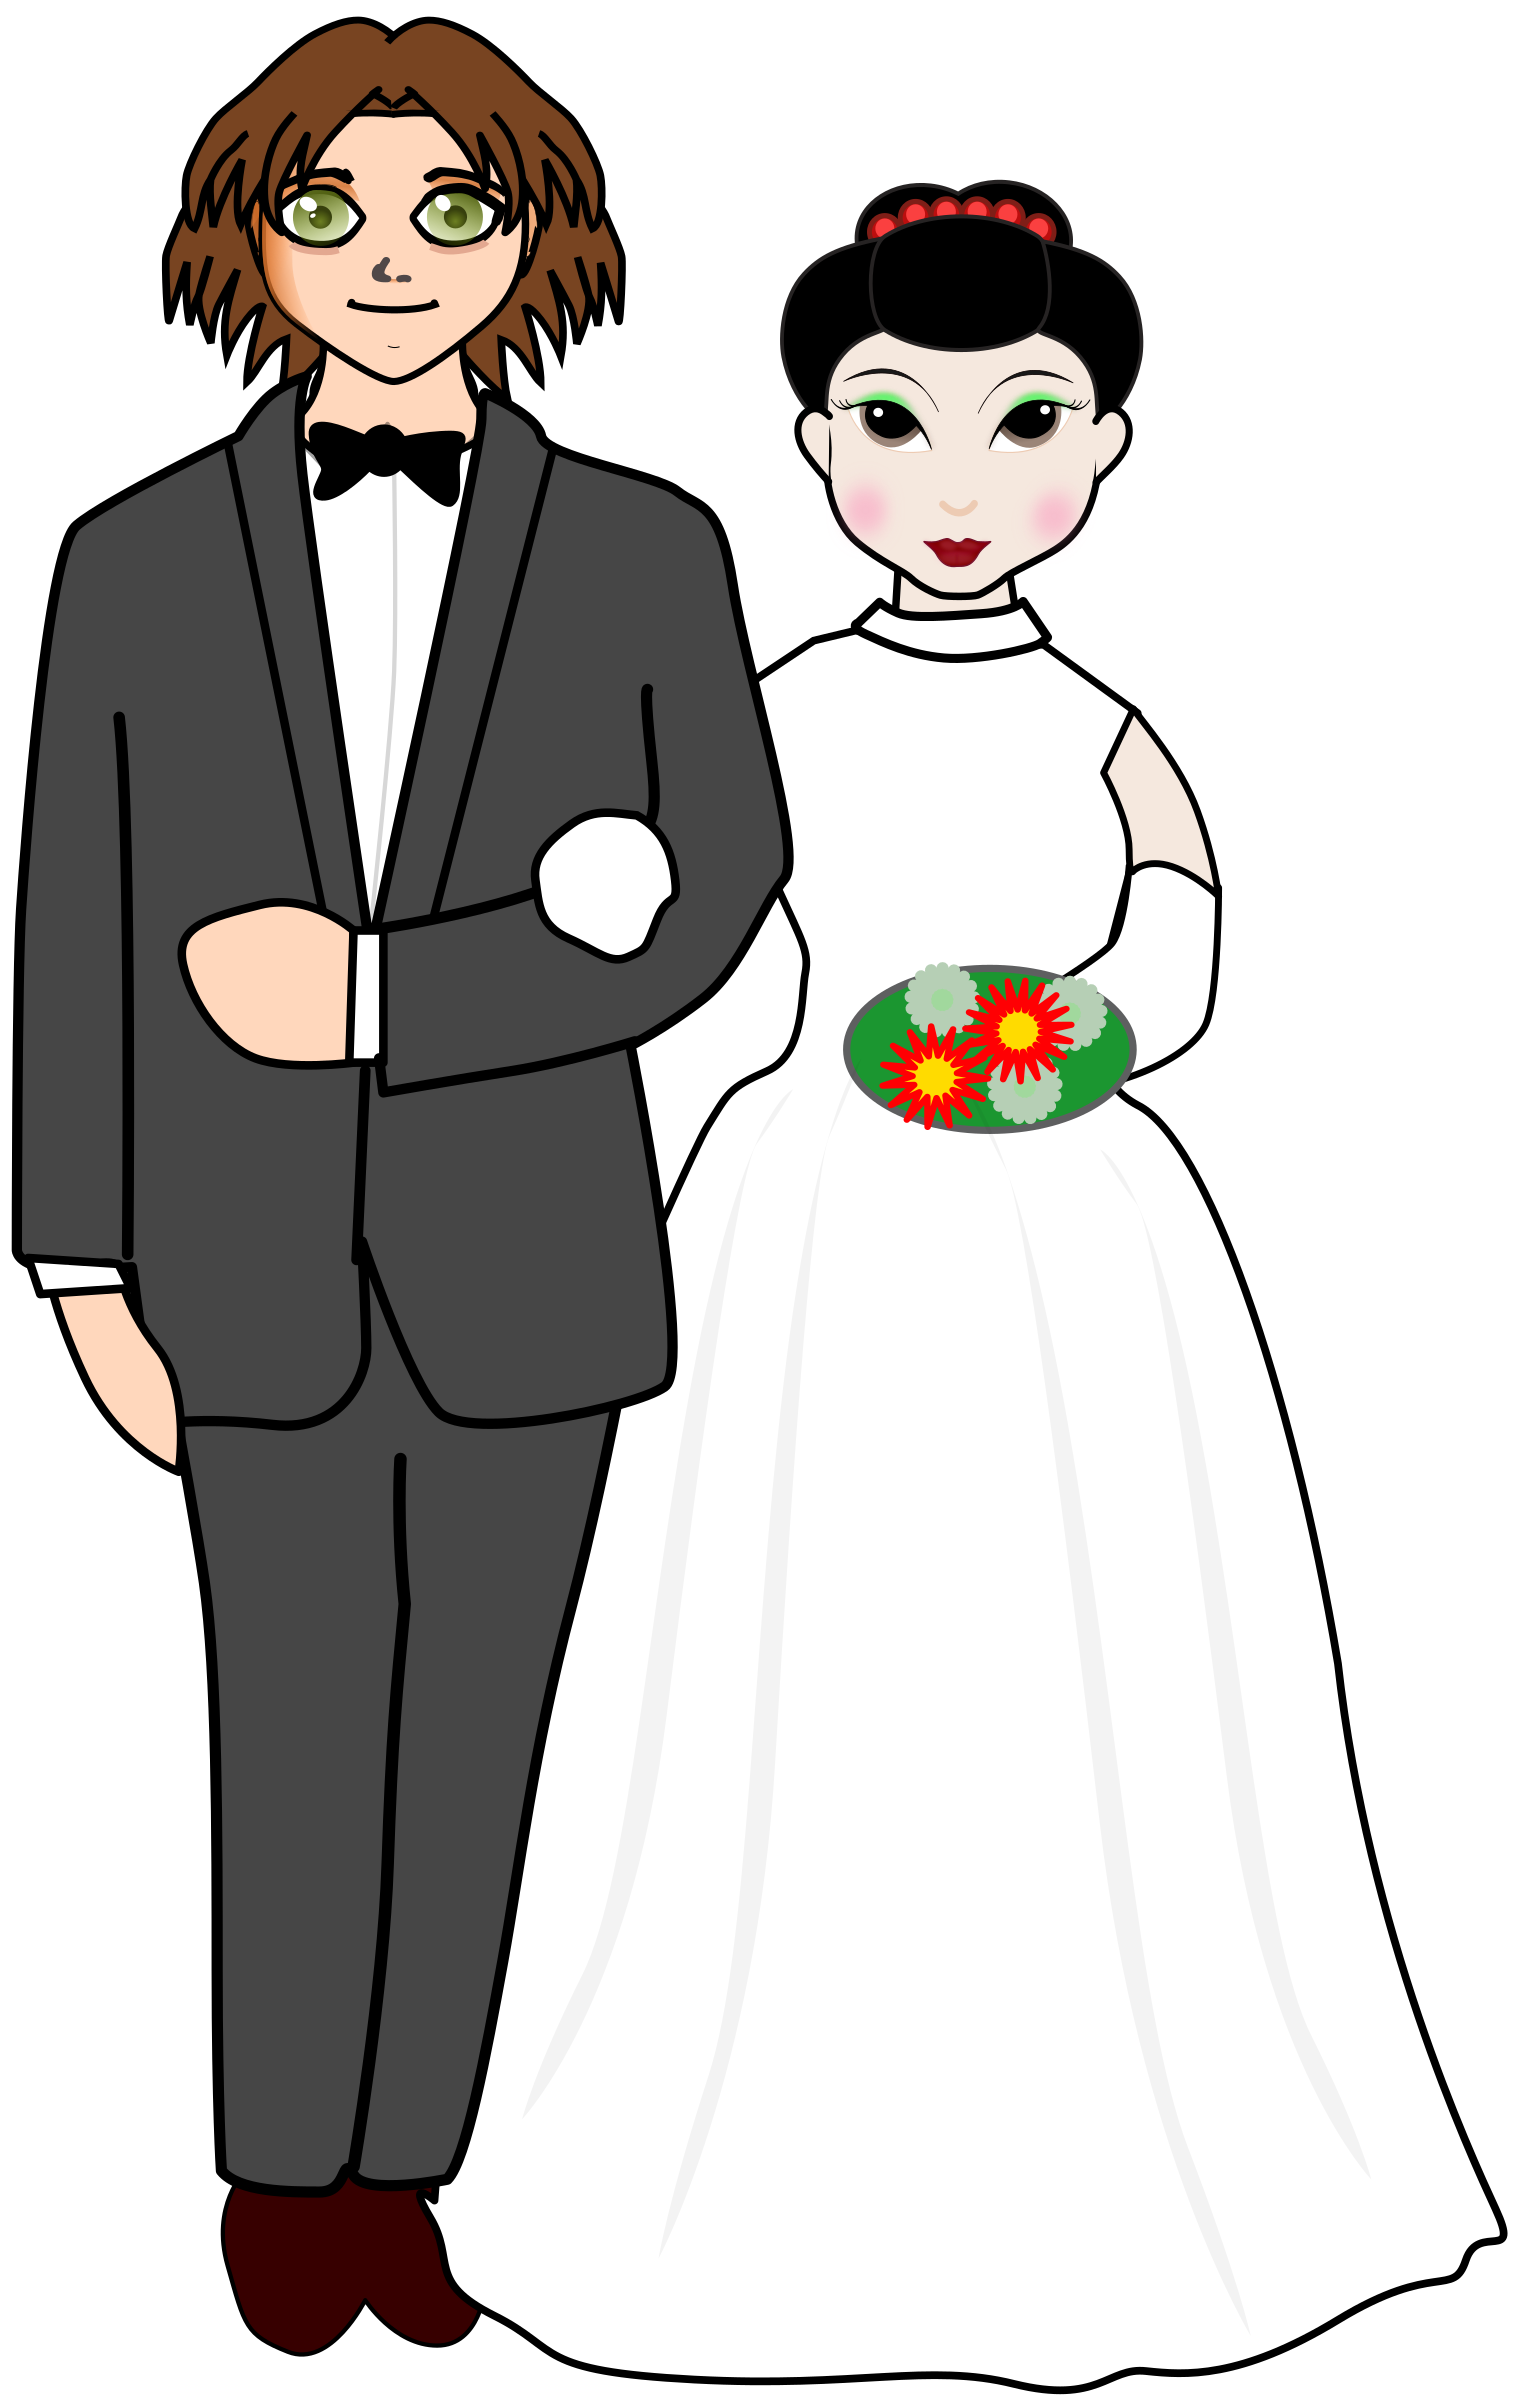 Couple big image png. Clipart wedding person